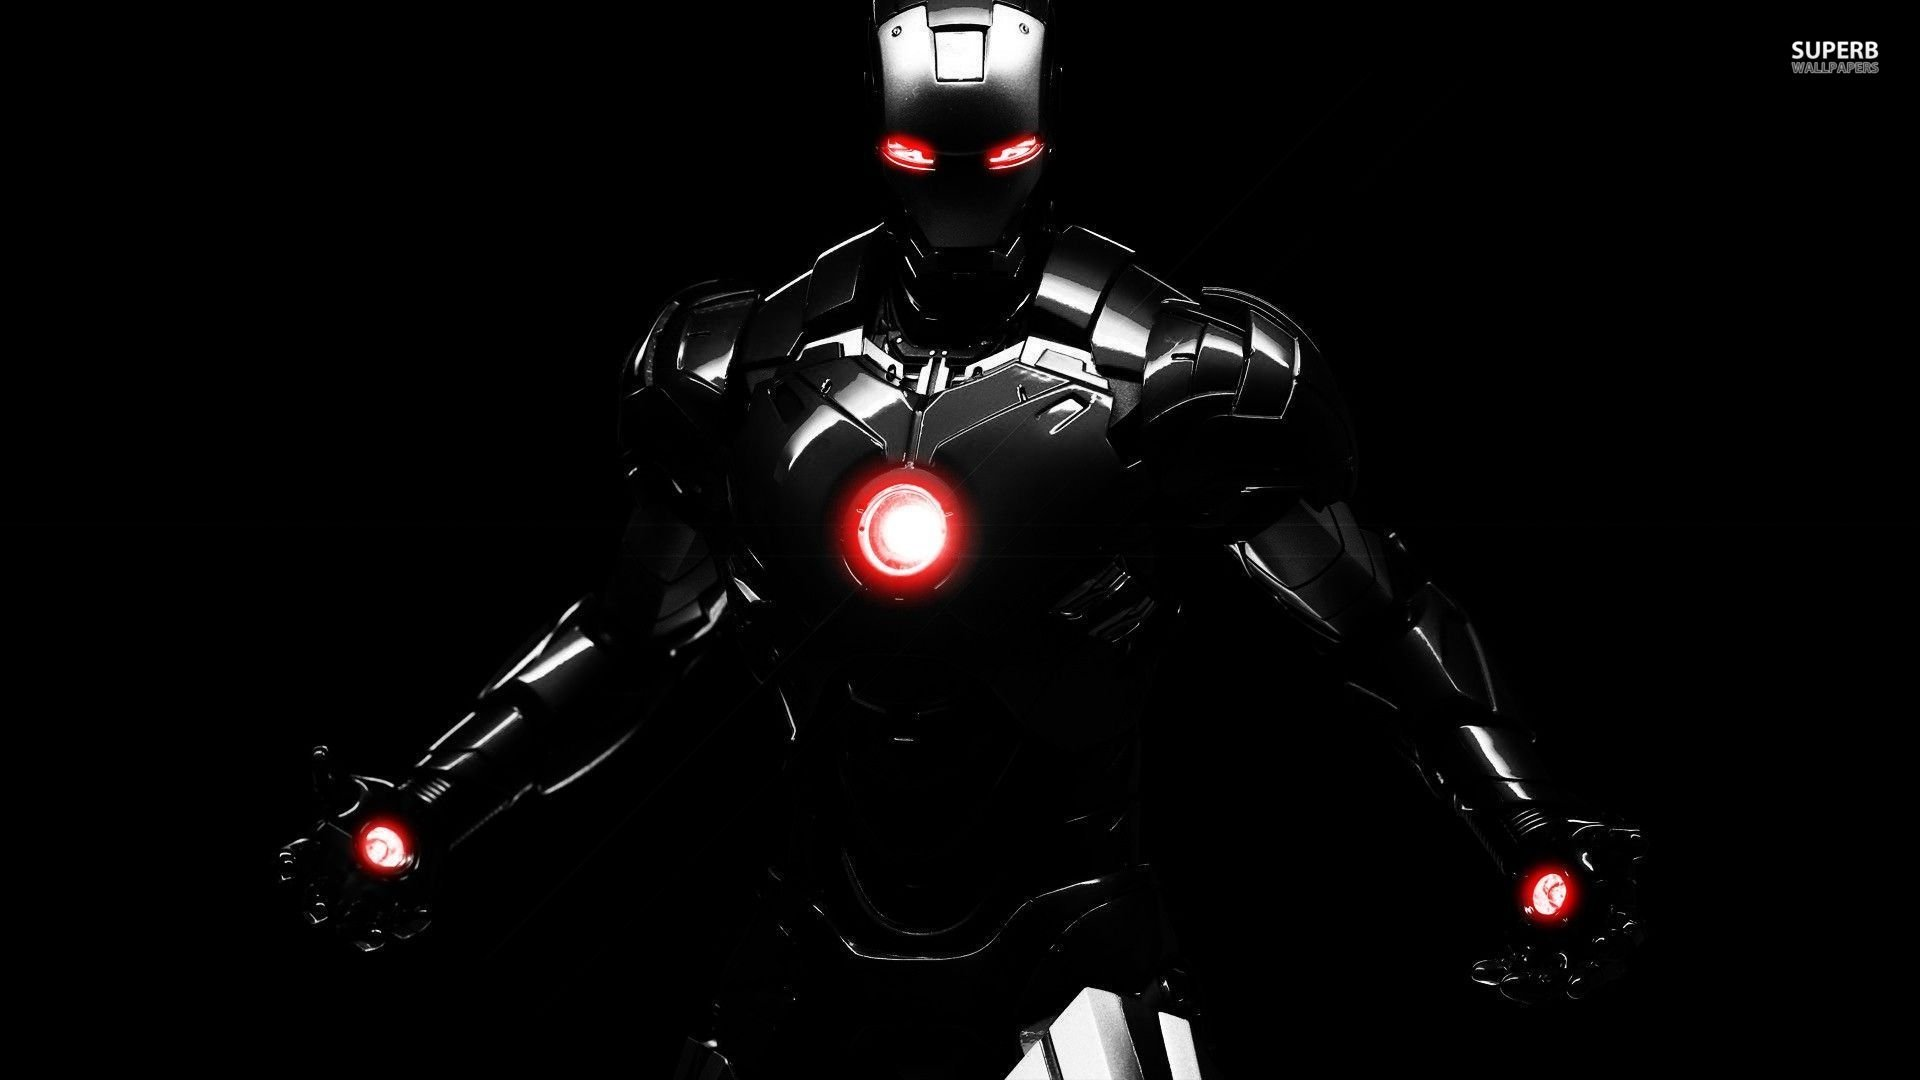 44 Iron Man 4k Wallpaper On Wallpapersafari